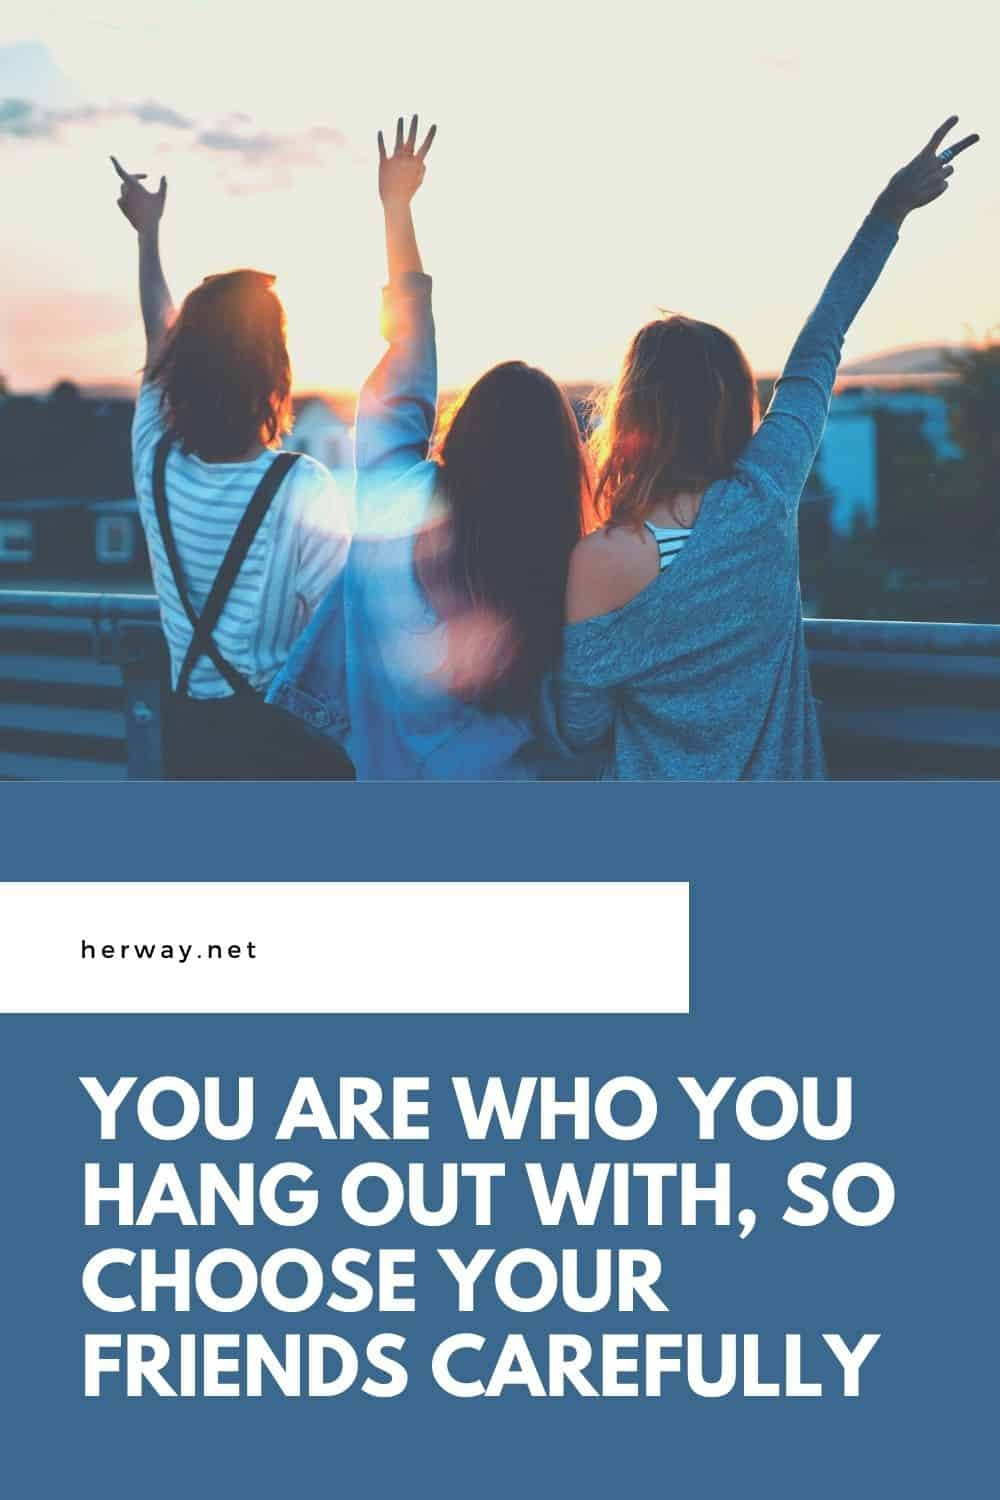 You Are Who You Hang Out With, So Choose Your Friends Carefully